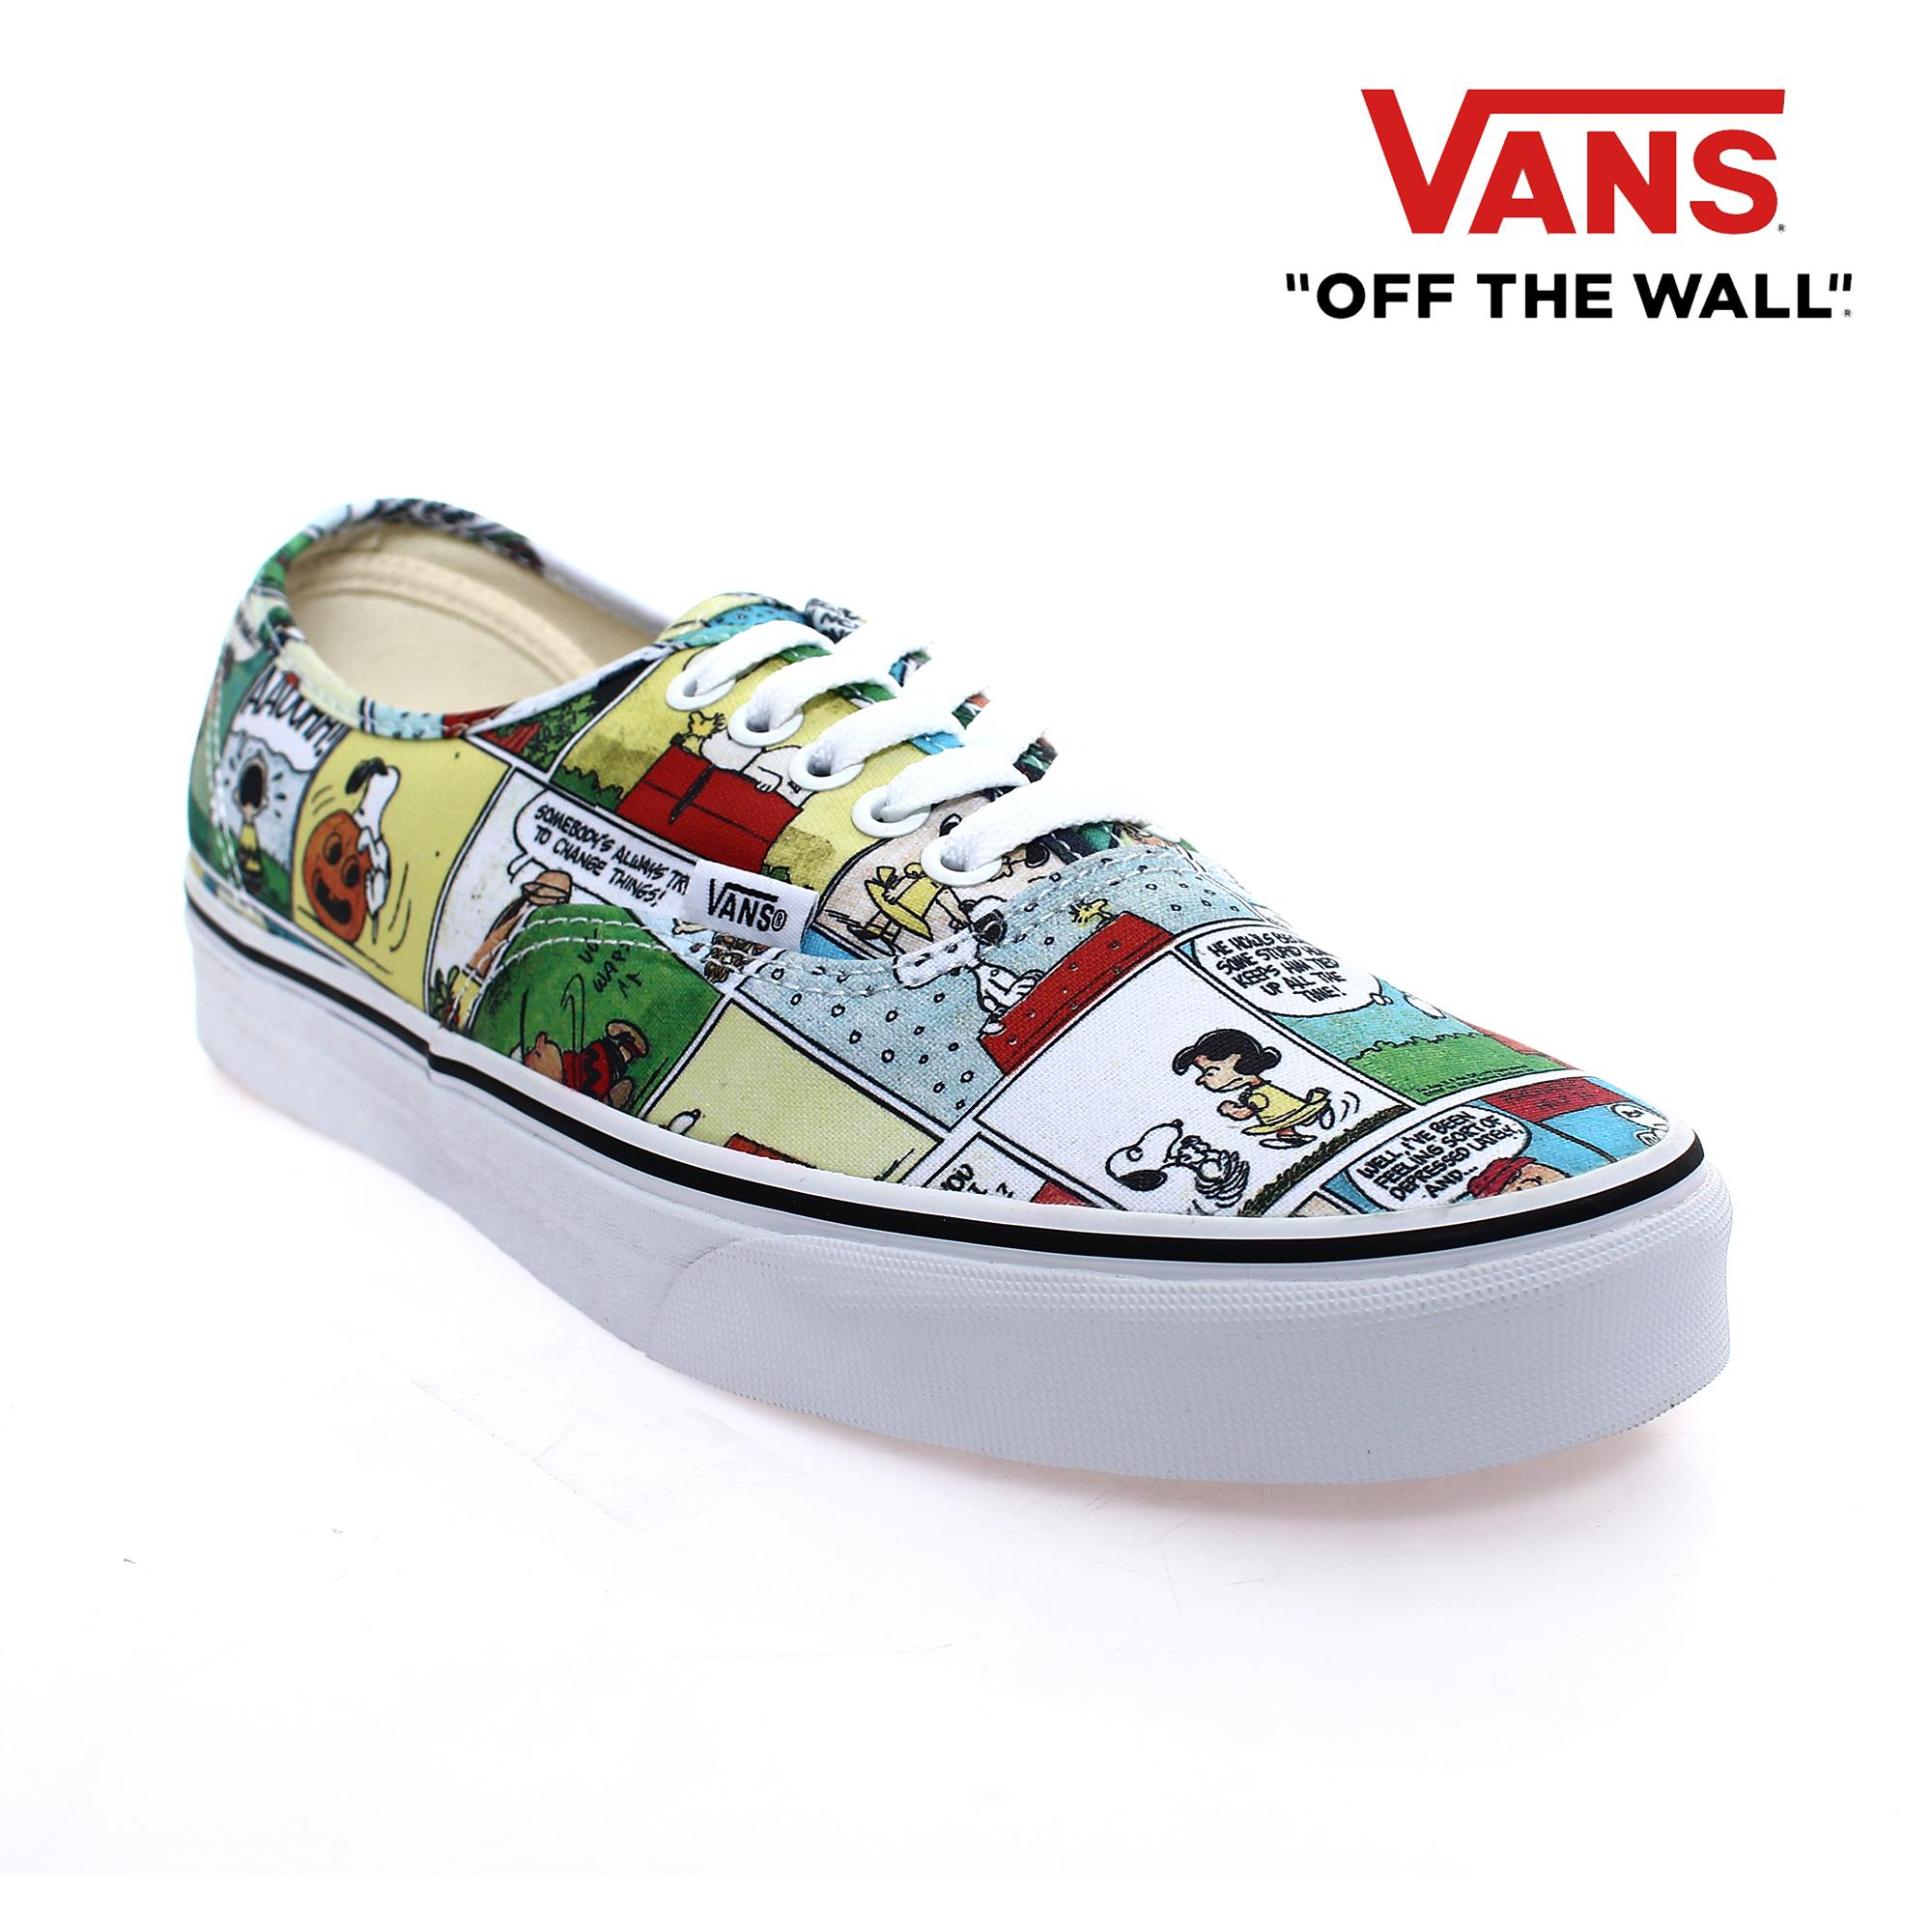 c234d80dabb2 Buy 2 OFF ANY vans shoes price list ph CASE AND GET 70% OFF!